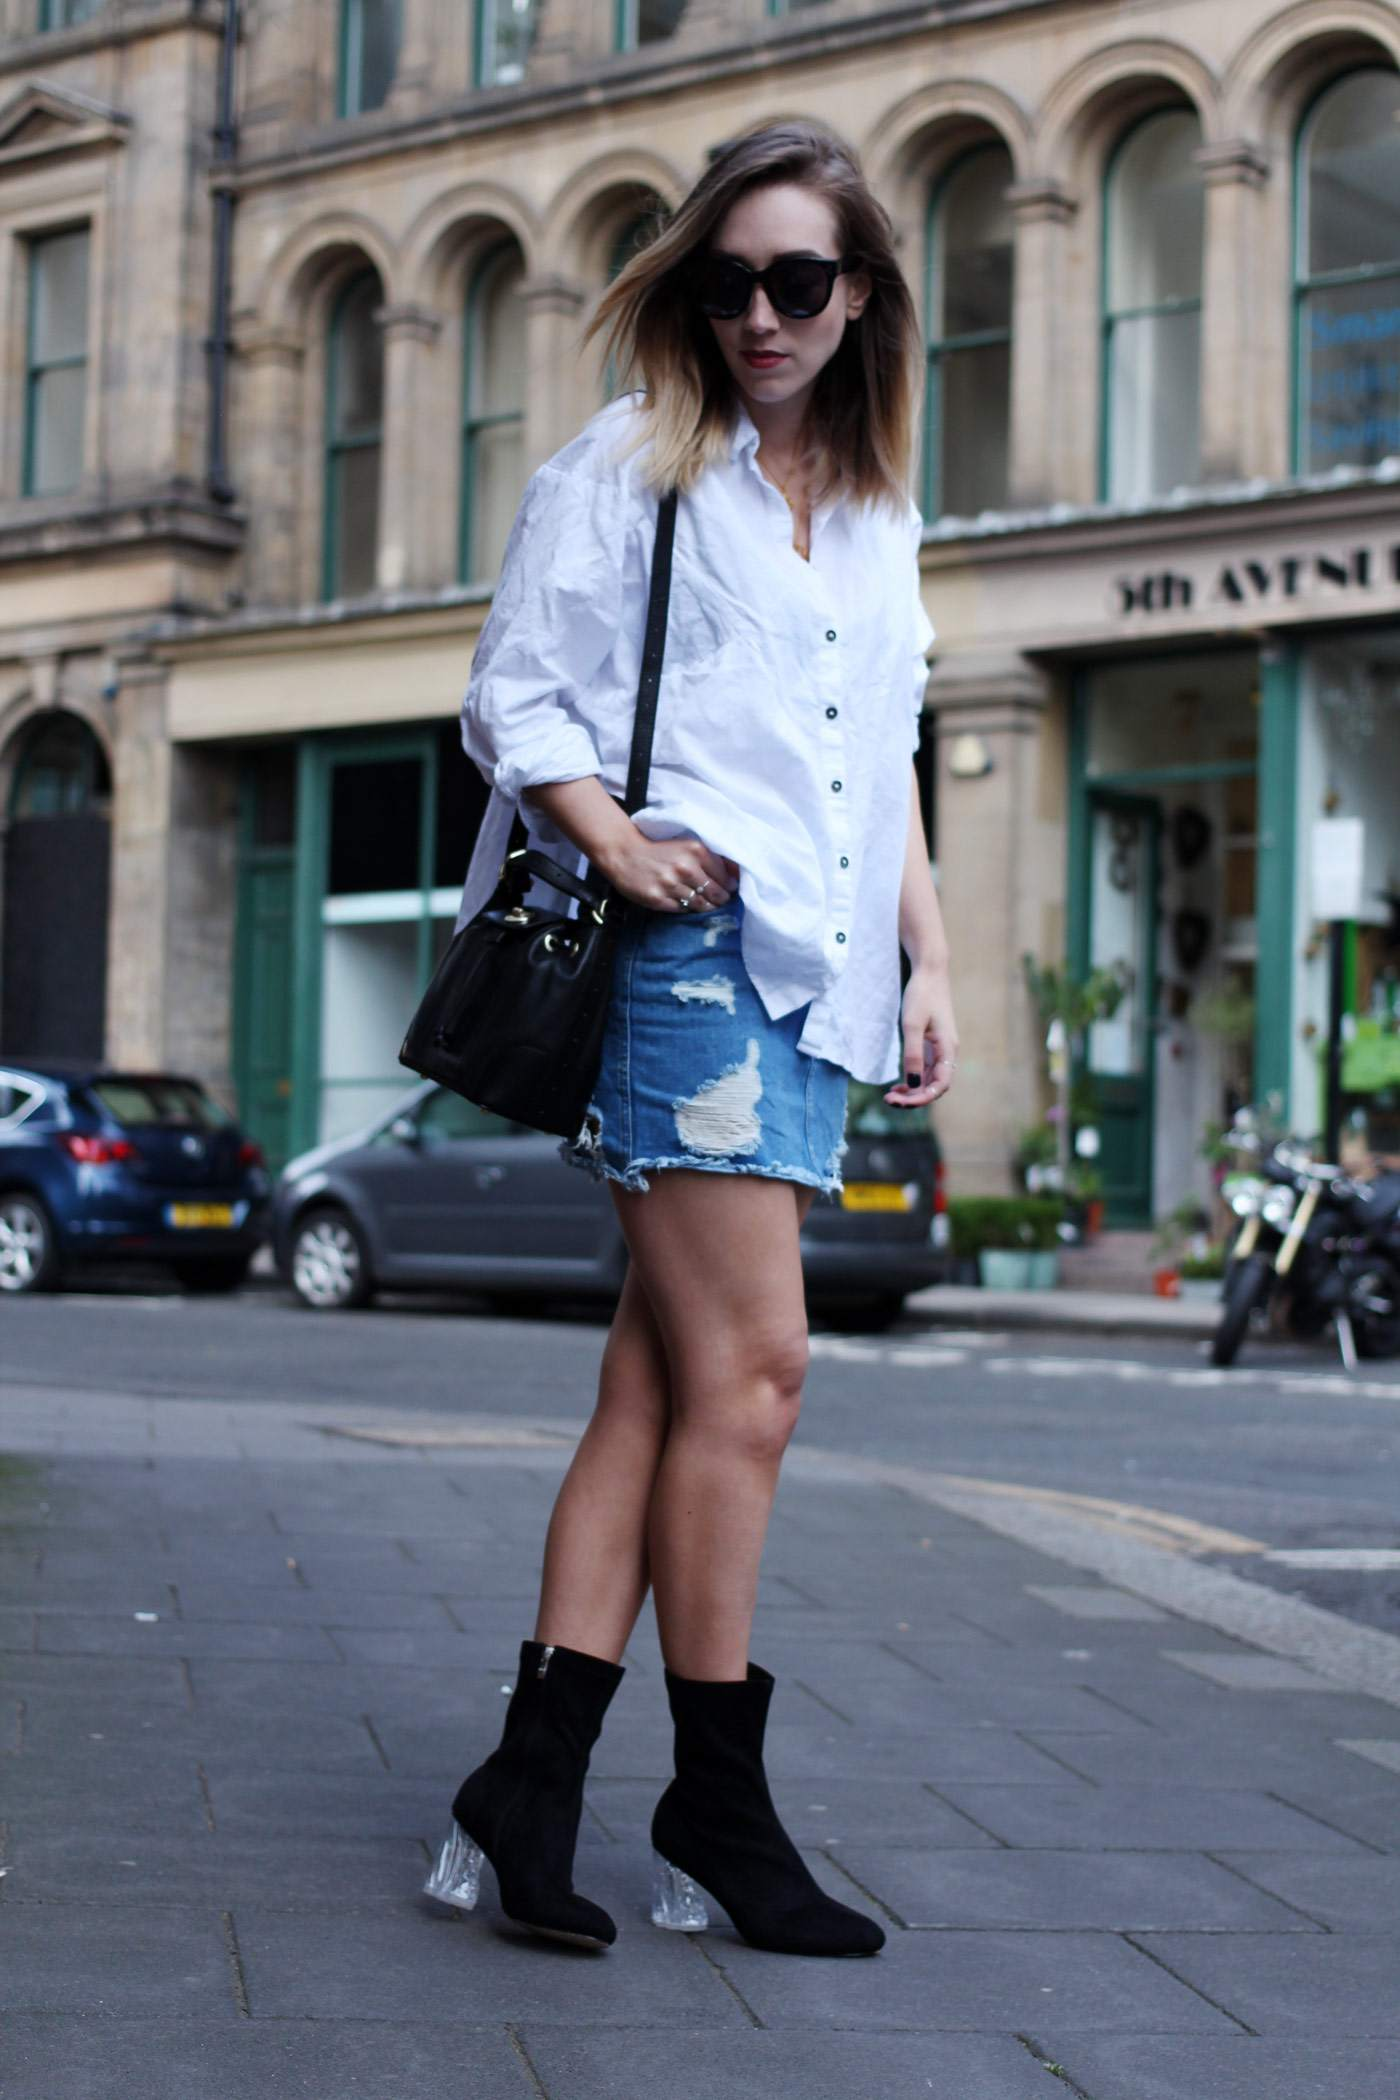 ego-boots-denim-skirt-oversized-white-shirt-radley-bag-3